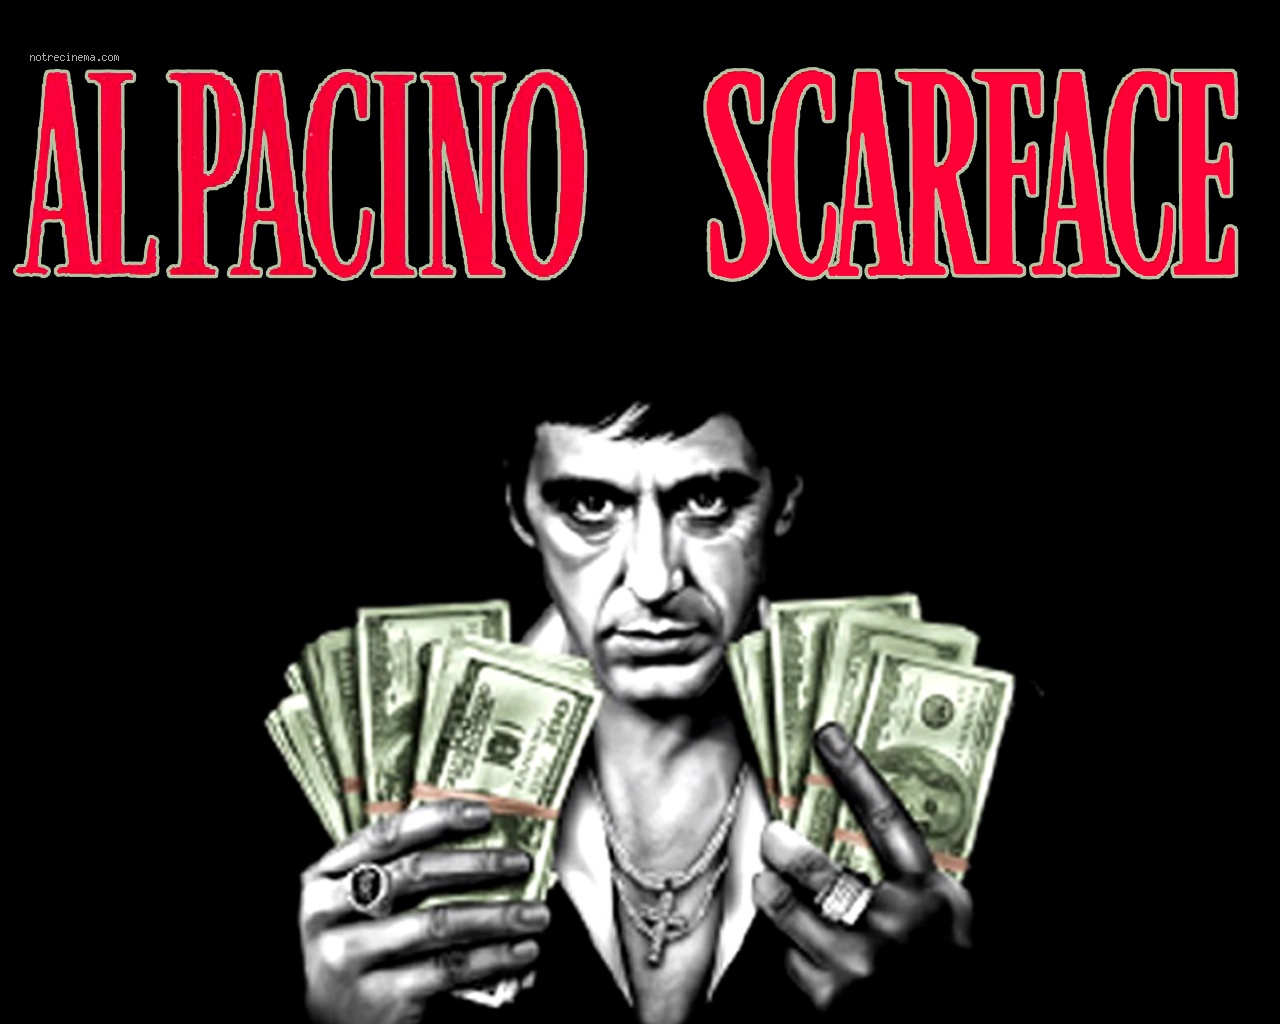 Scarface wallpaper HD 1280x1024